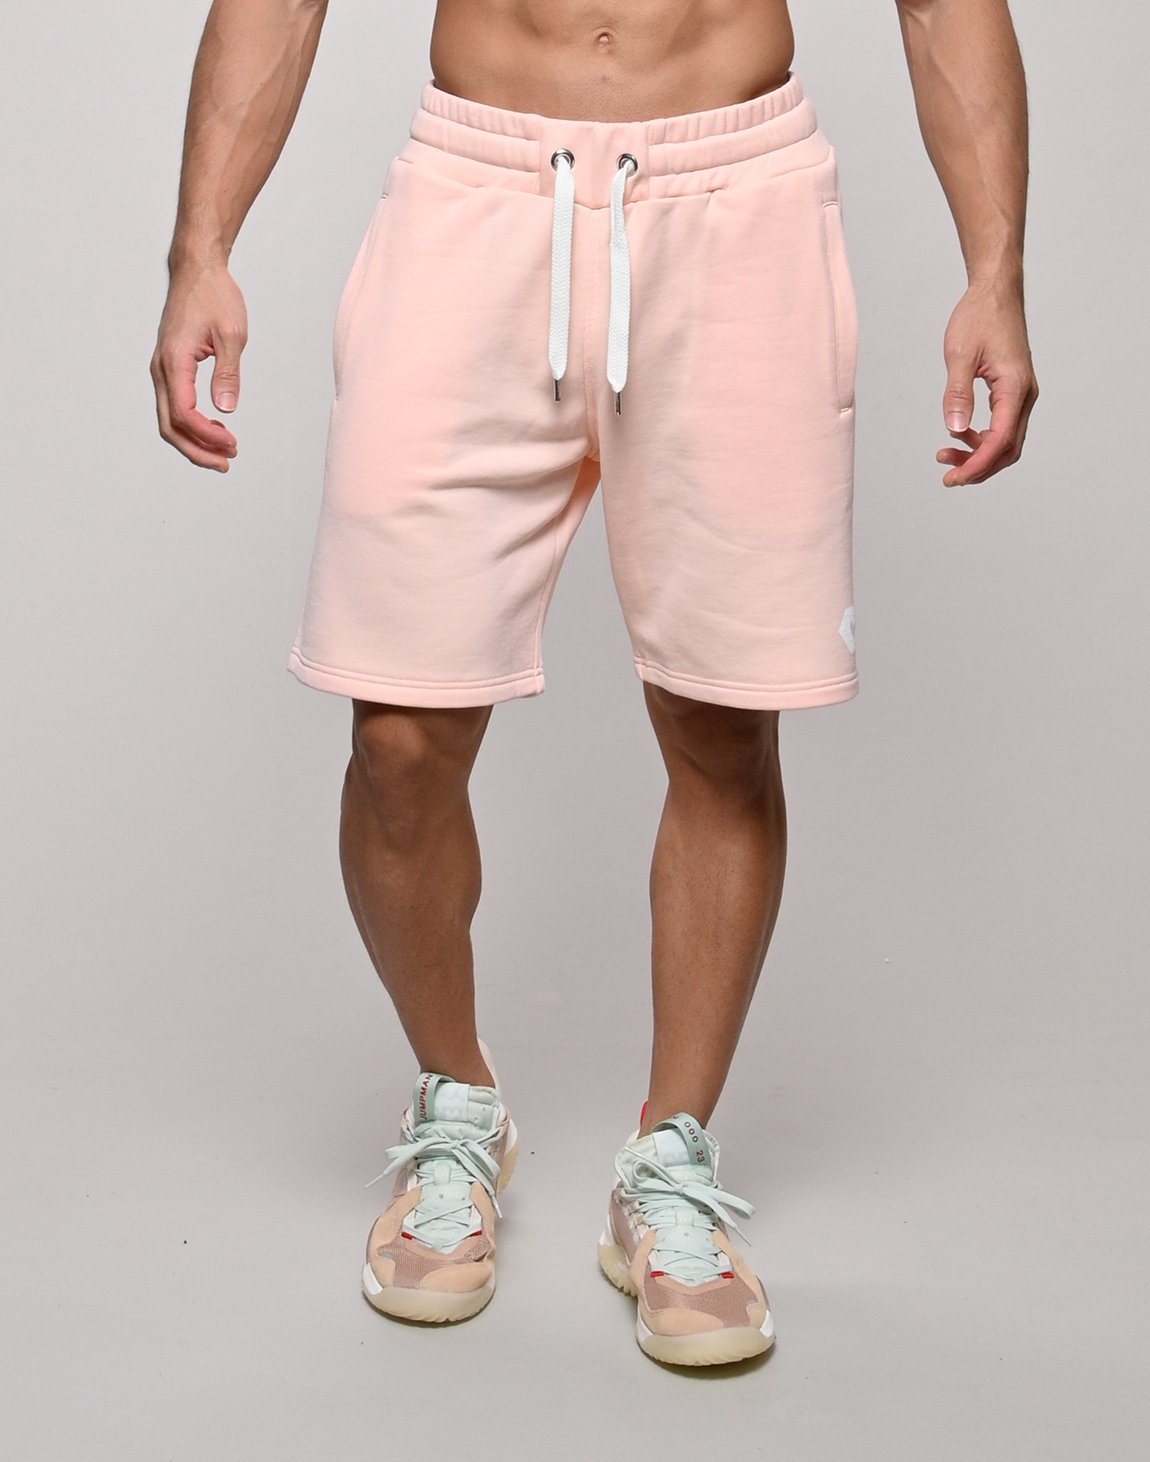 <img class='new_mark_img1' src='https://img.shop-pro.jp/img/new/icons1.gif' style='border:none;display:inline;margin:0px;padding:0px;width:auto;' />CRONOS BACK THREAD SHORTS【PINK】